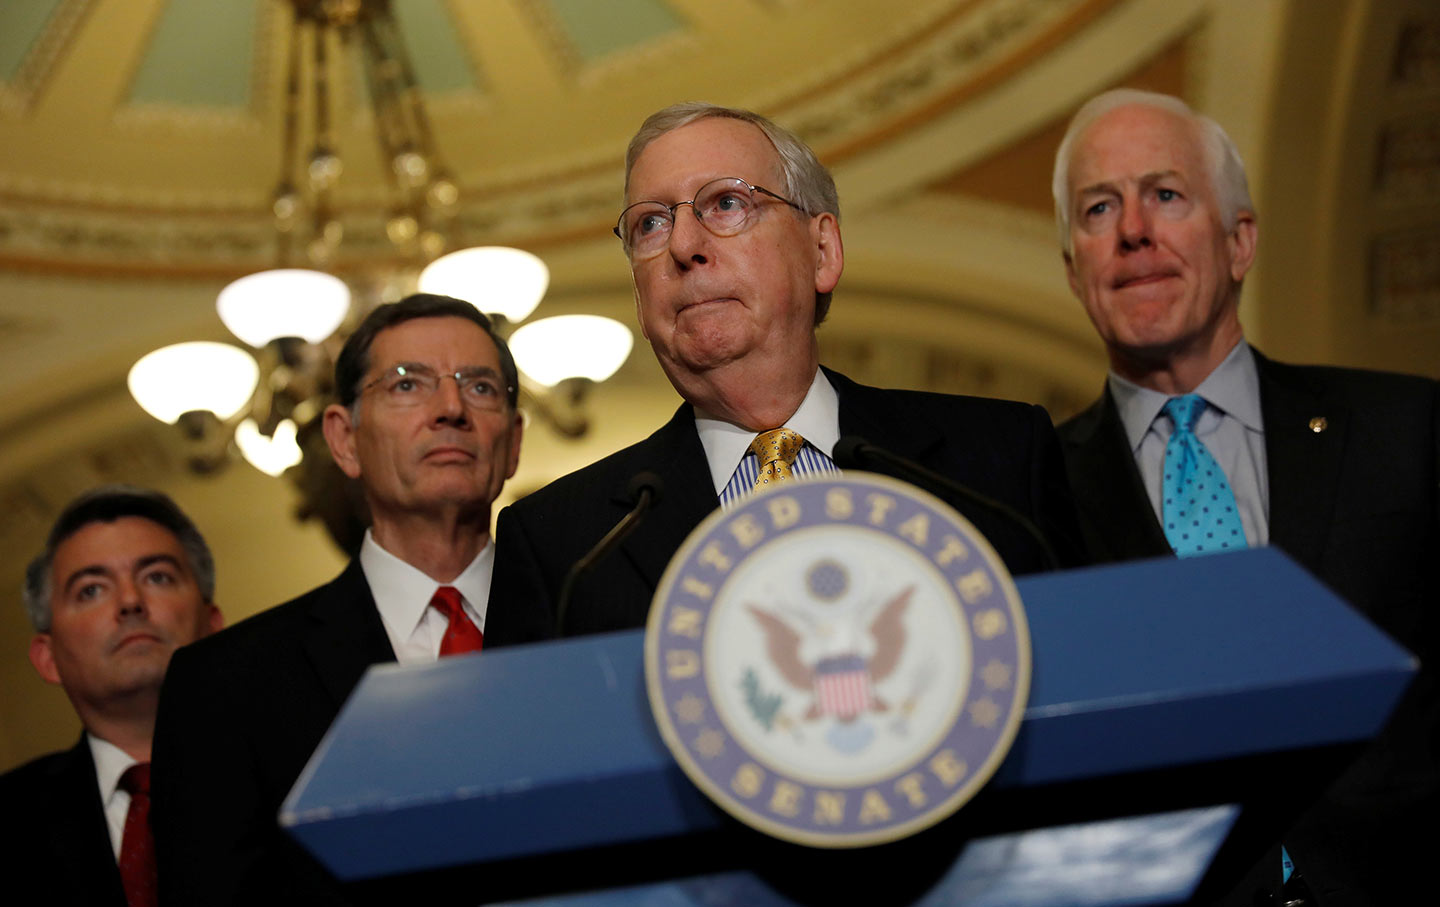 Mitch McConnell, Cory Gardner, and John Barrasso